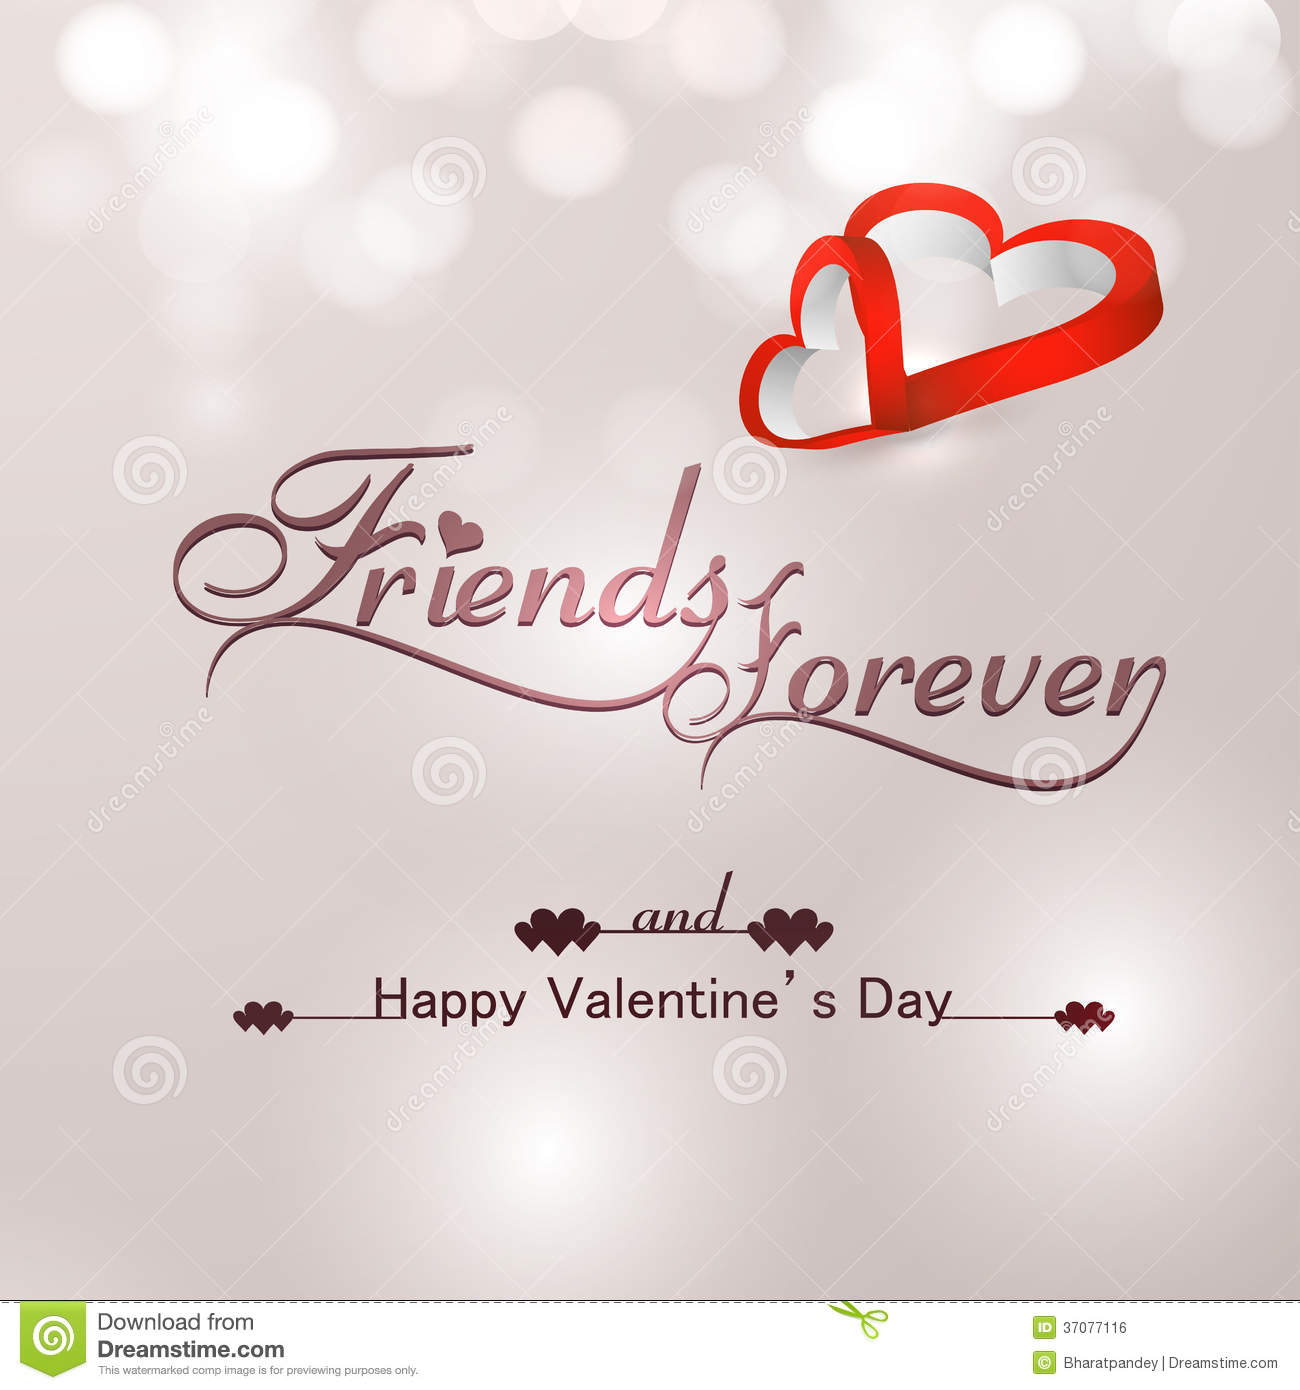 Beautiful Friends Forever For Happy Valentine S Day Heart